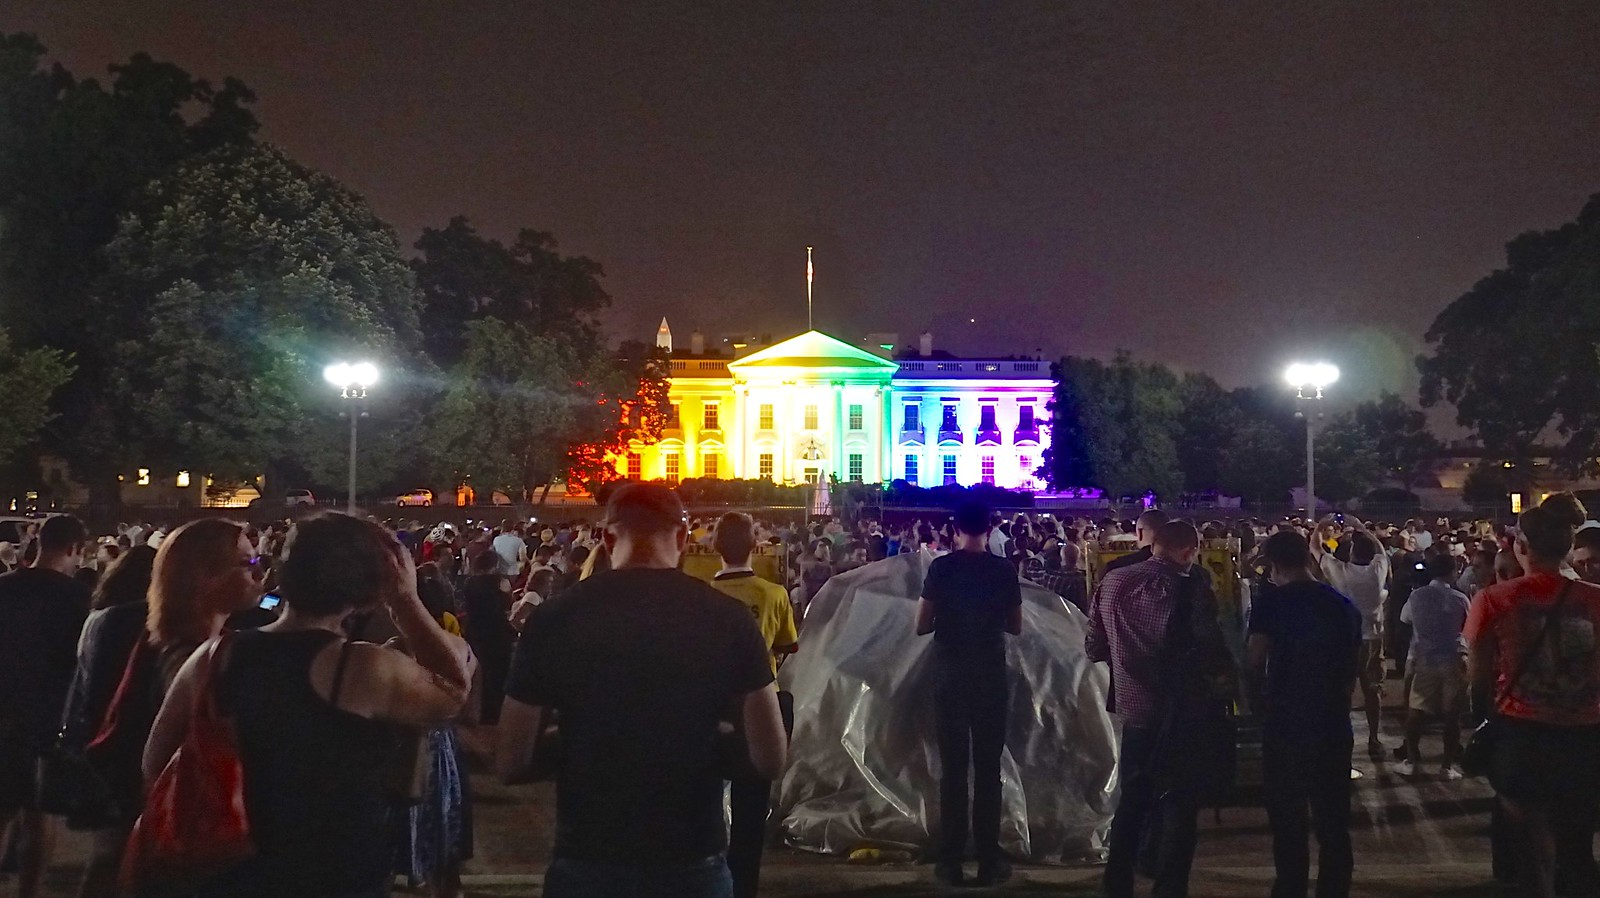 The Stunned Silence in front of the White House in Rainbow Colors